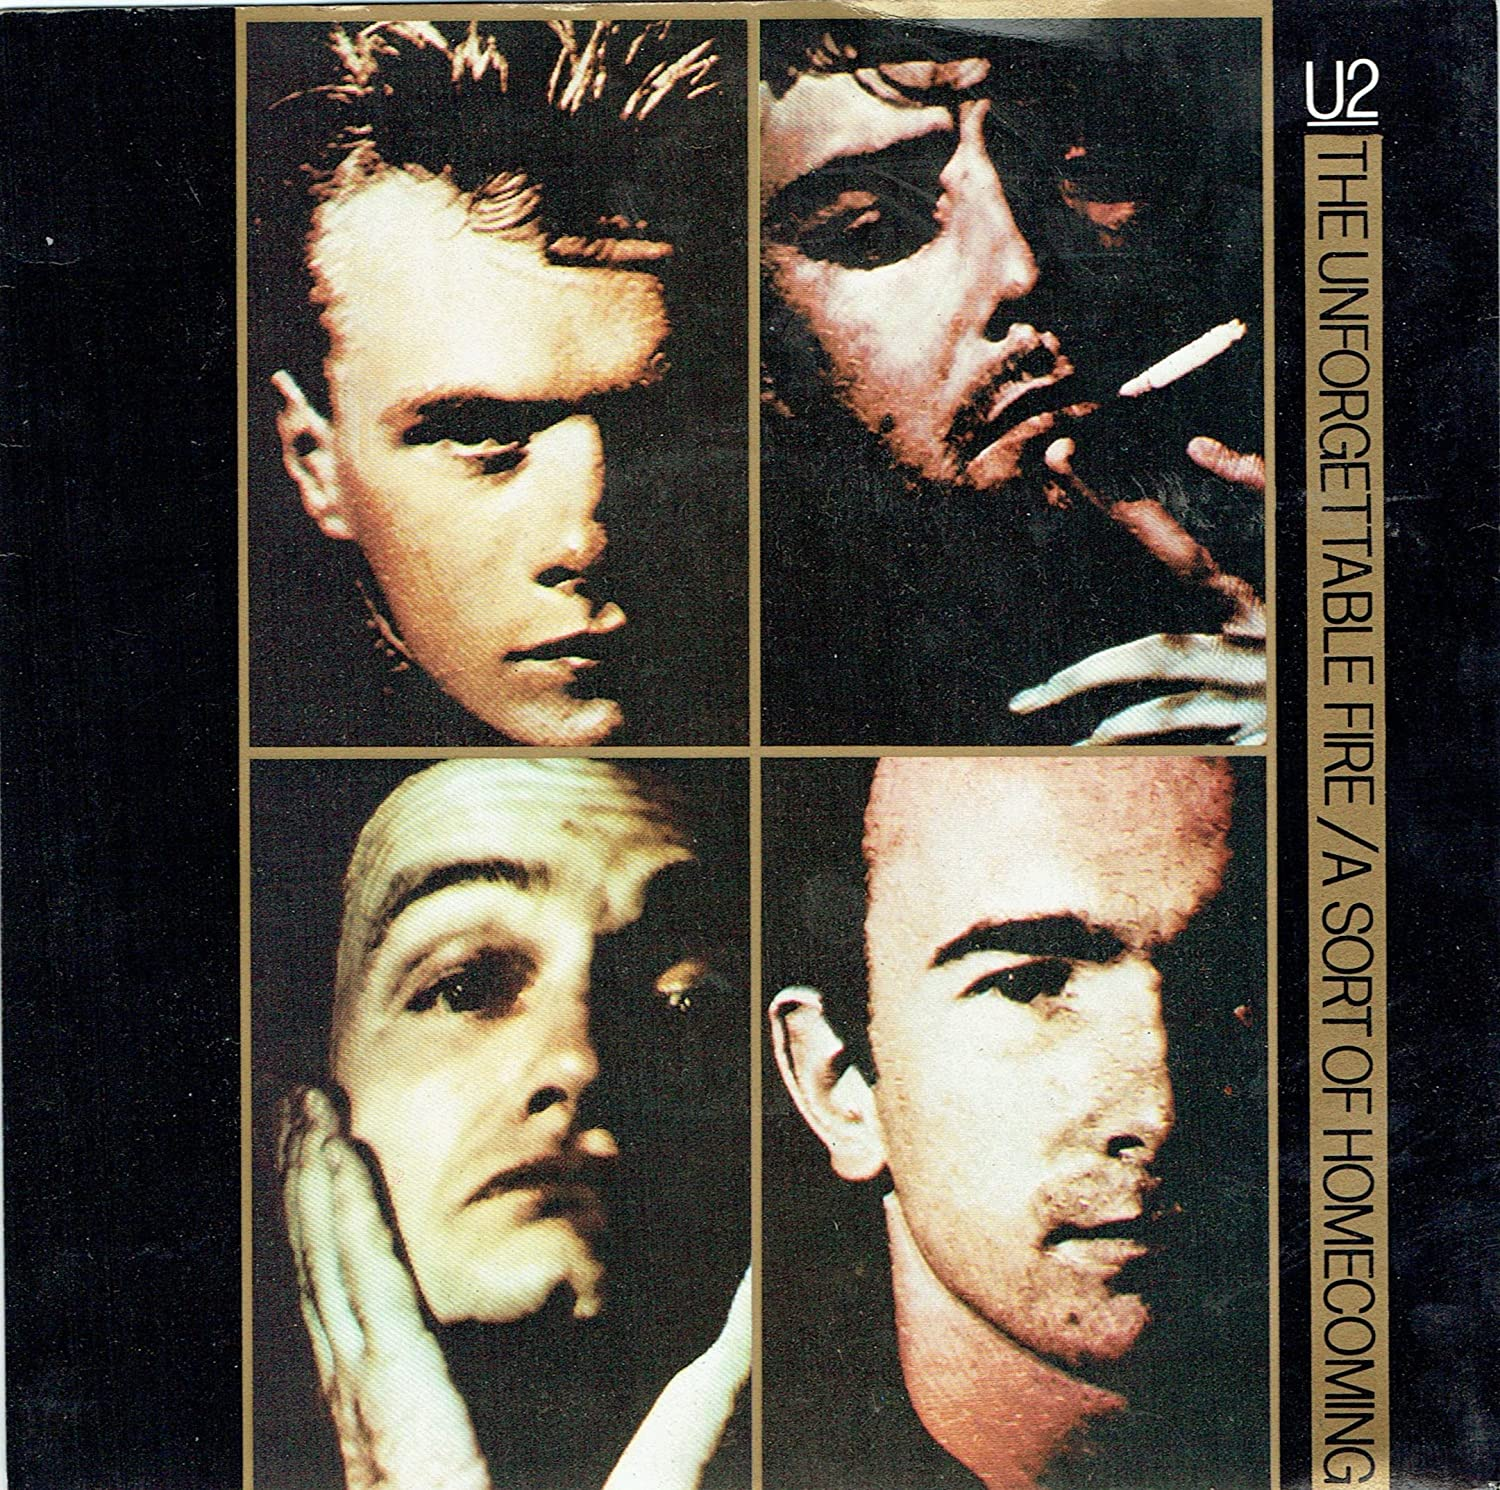 U2 ‎– The Unforgettable Fire / A Sort Of Homecoming